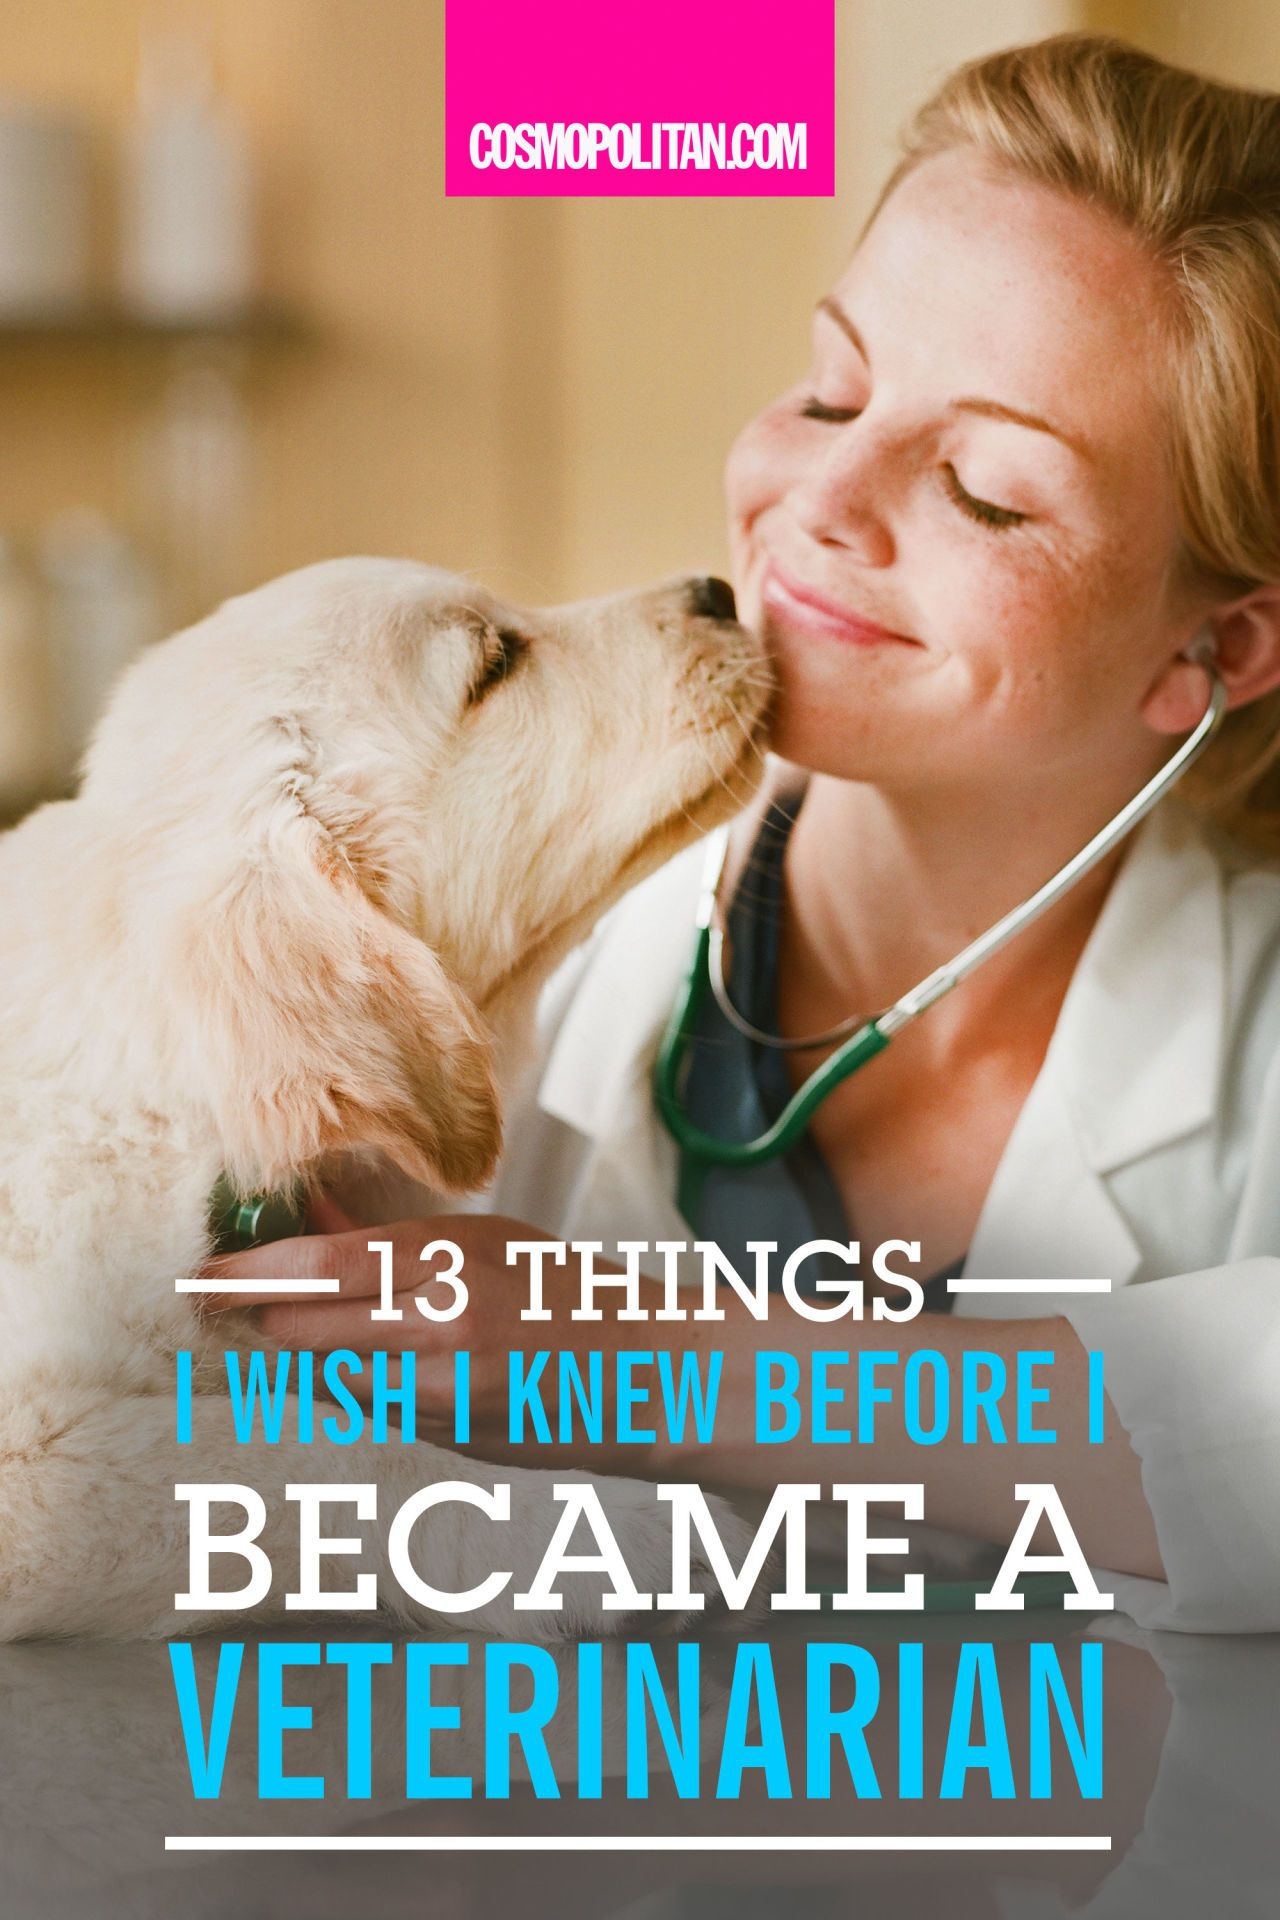 an introduction to the work of a veterinarian Veterinarians care for the health of animals and work to improve public health they diagnose, treat, and research medical conditions and diseases of pets, livestock, and other animals most veterinarians work in private clinics and hospitals.